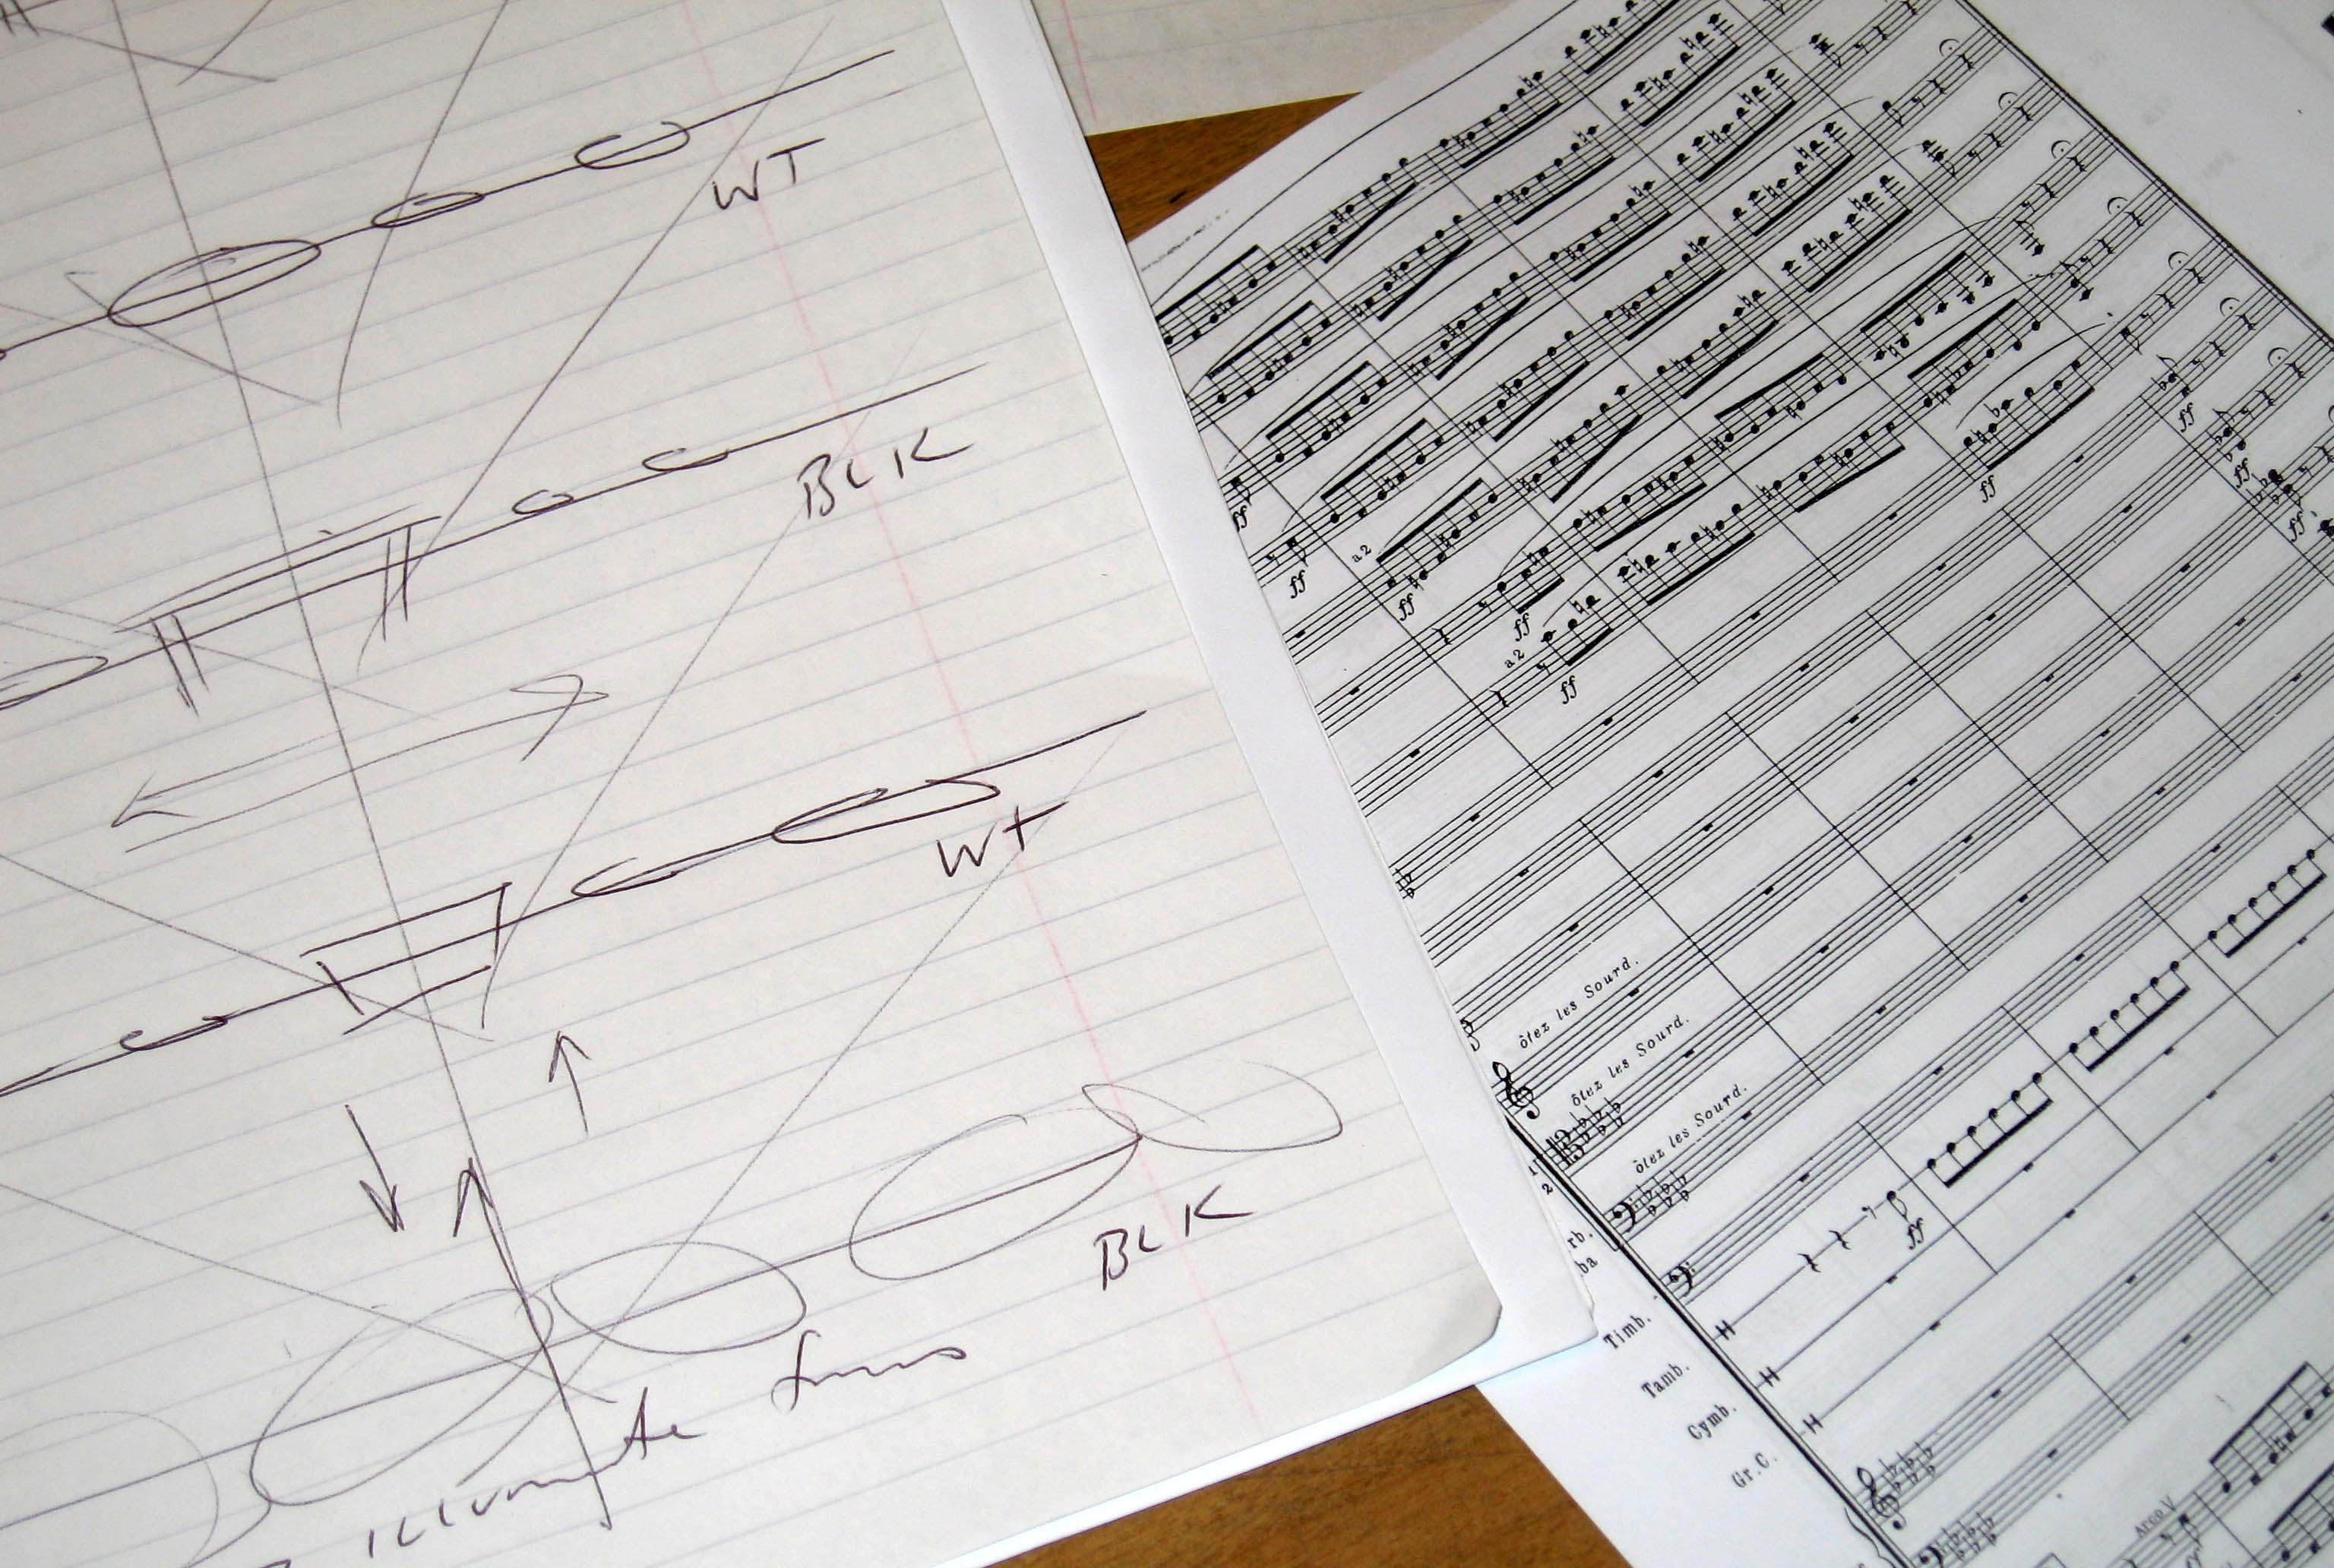 3_Working with the Score